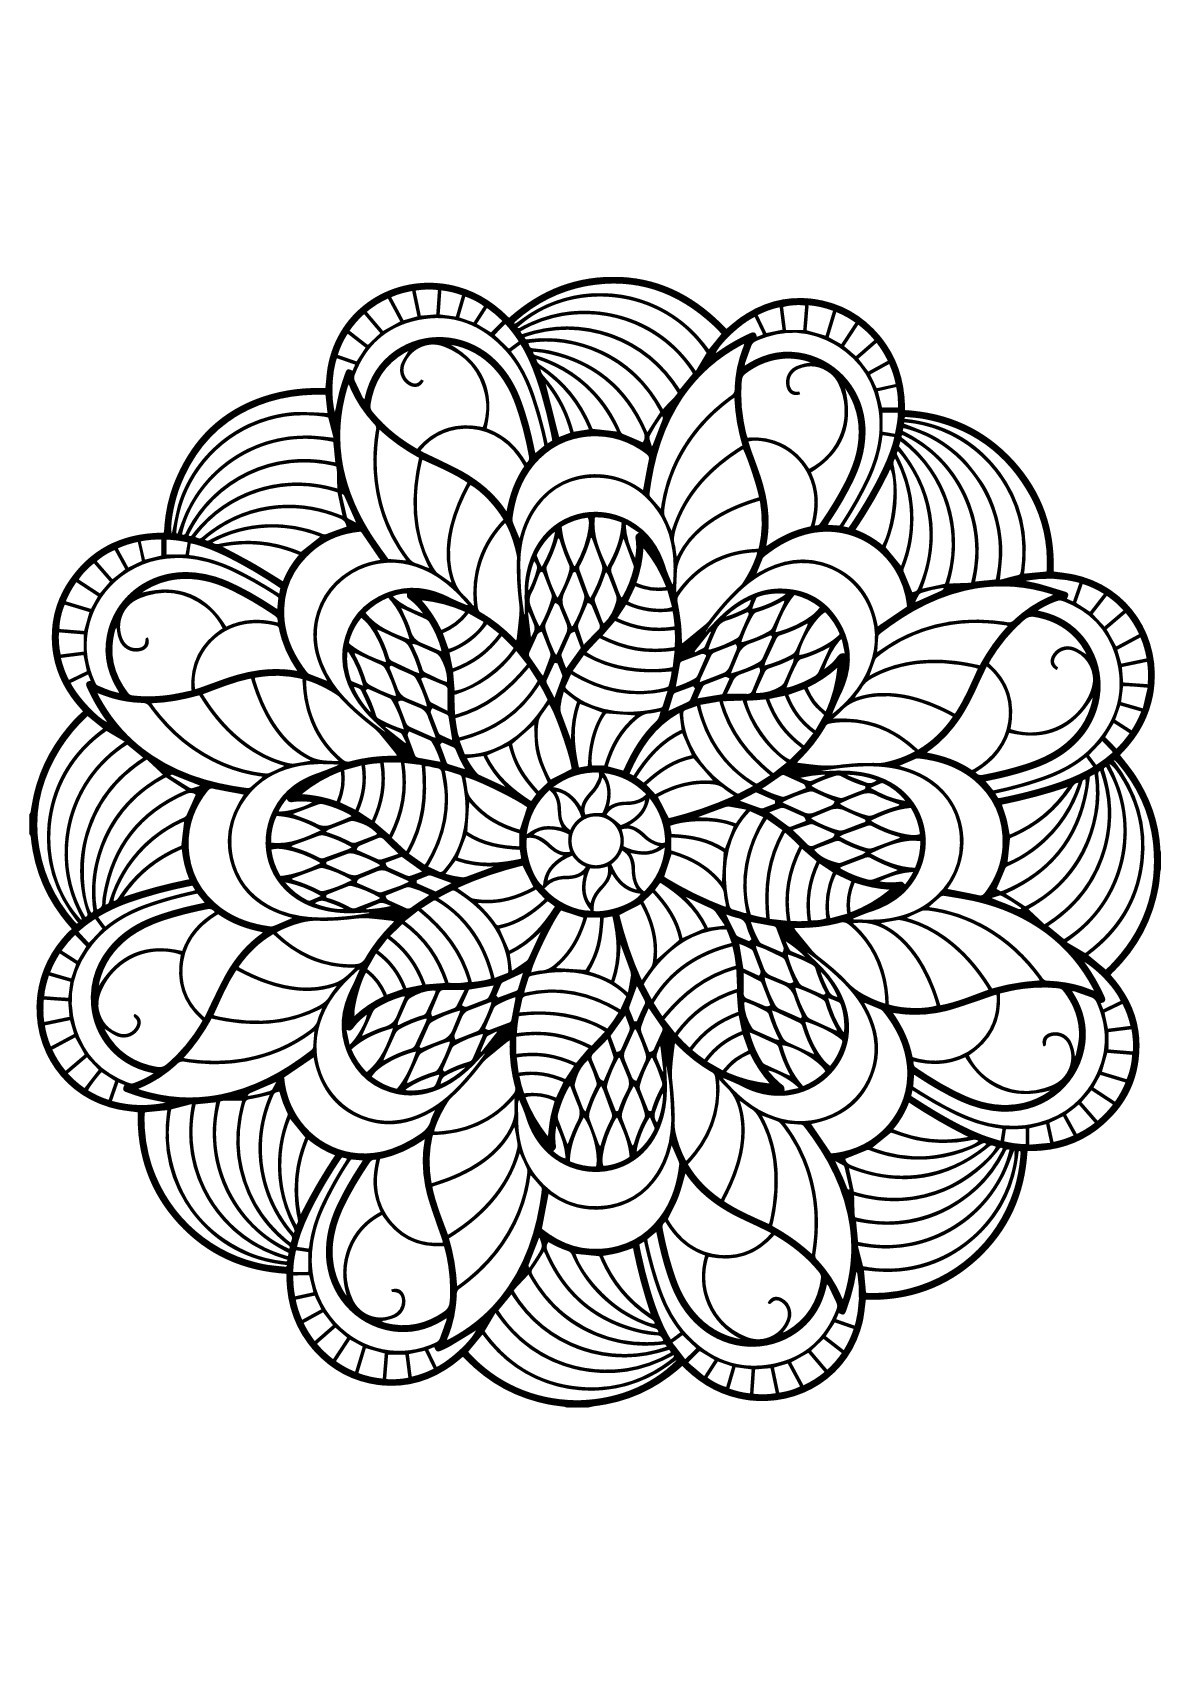 Mandala from free coloring books for adults 6 - Mandalas ...   coloring books for adults mandala